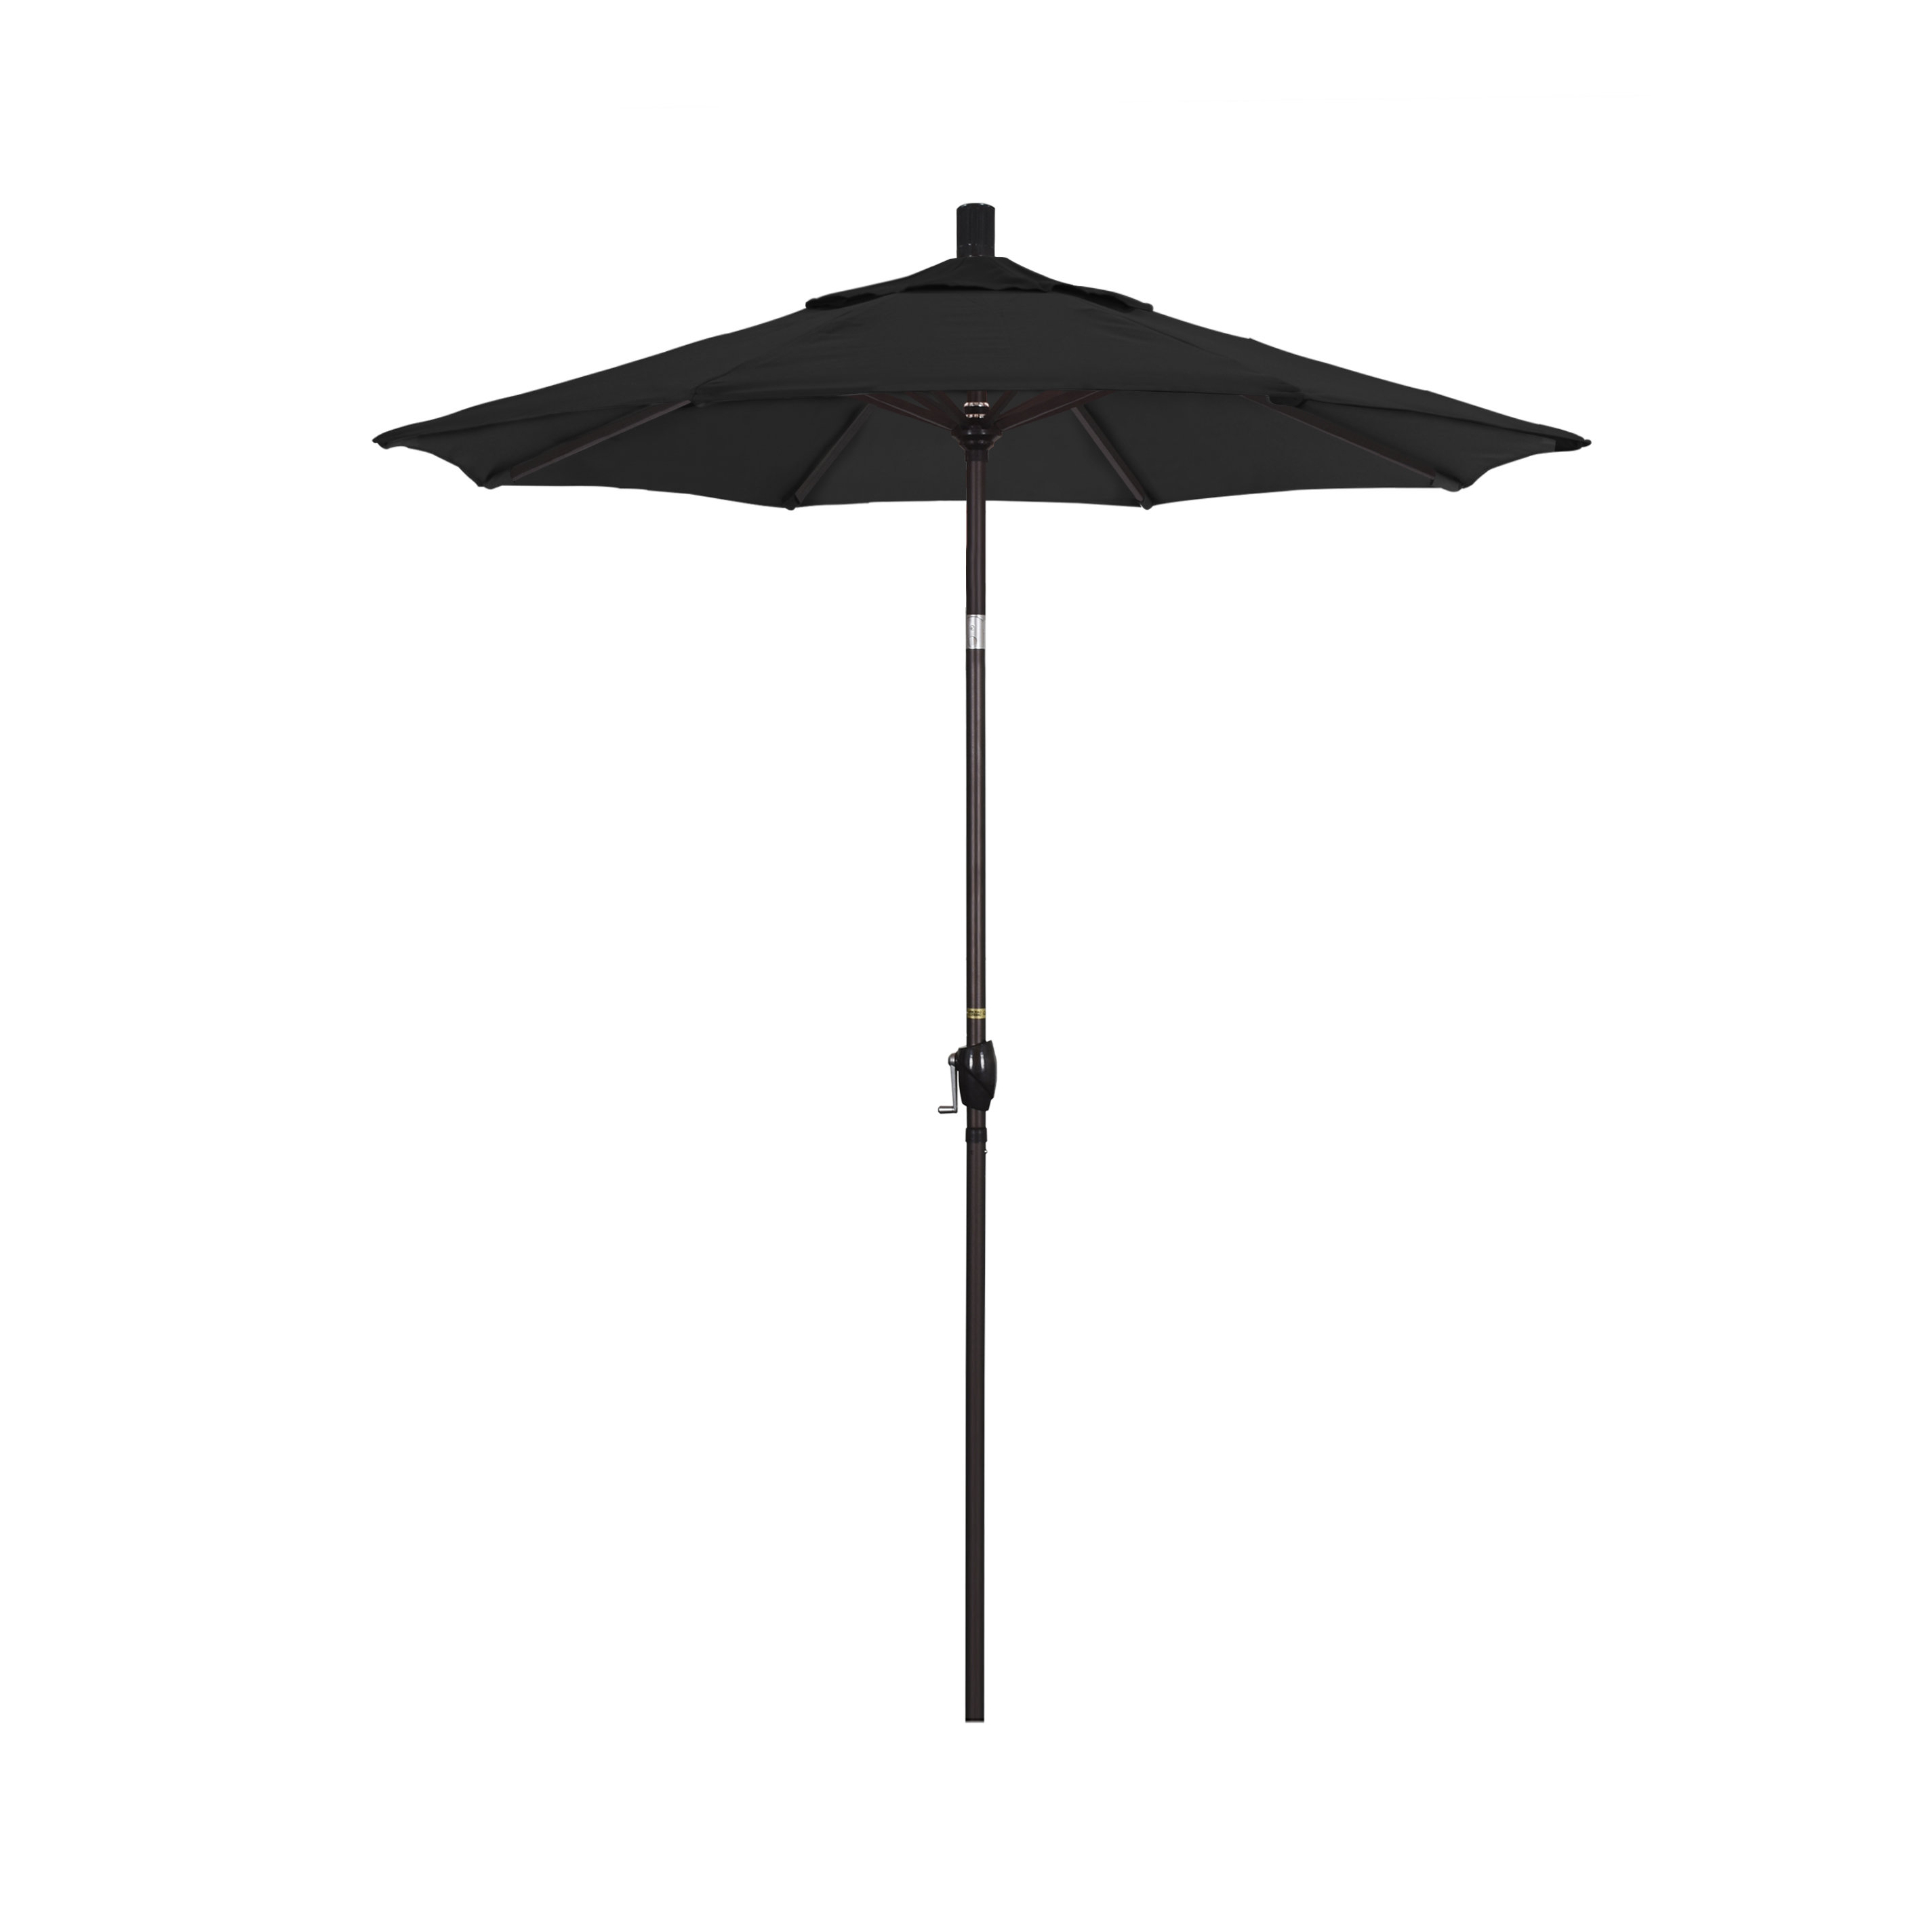 2019 Wallach 6' Market Sunbrella Umbrella For Wallach Market Sunbrella Umbrellas (View 5 of 20)